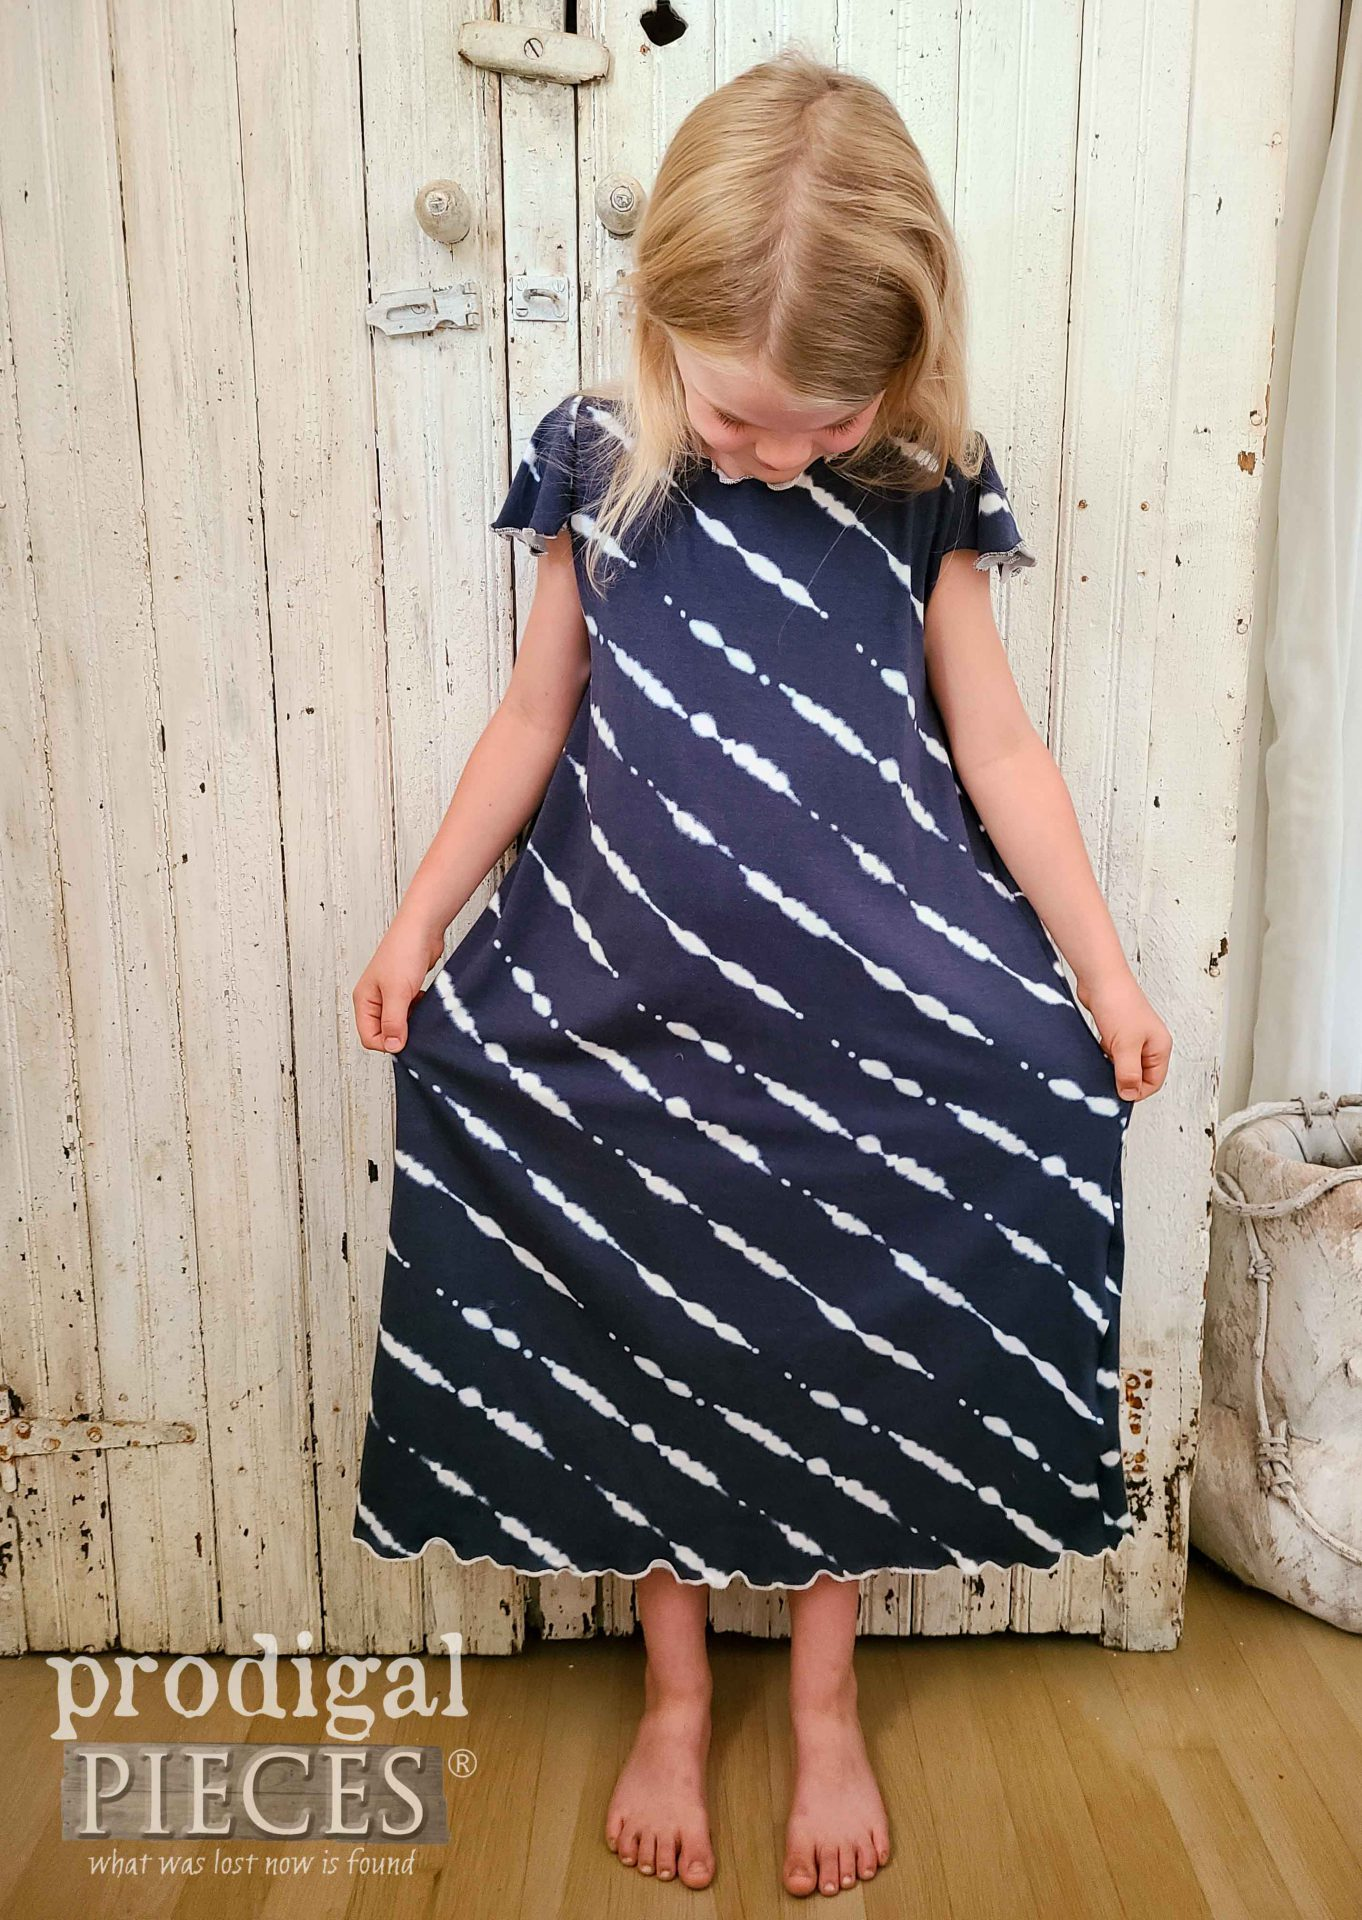 Handmade Nightgown from Upcycled Skirt | prodigalpieces.com #prodigalpieces #refashion #diy #sewing #clothing #fashion #upcycled